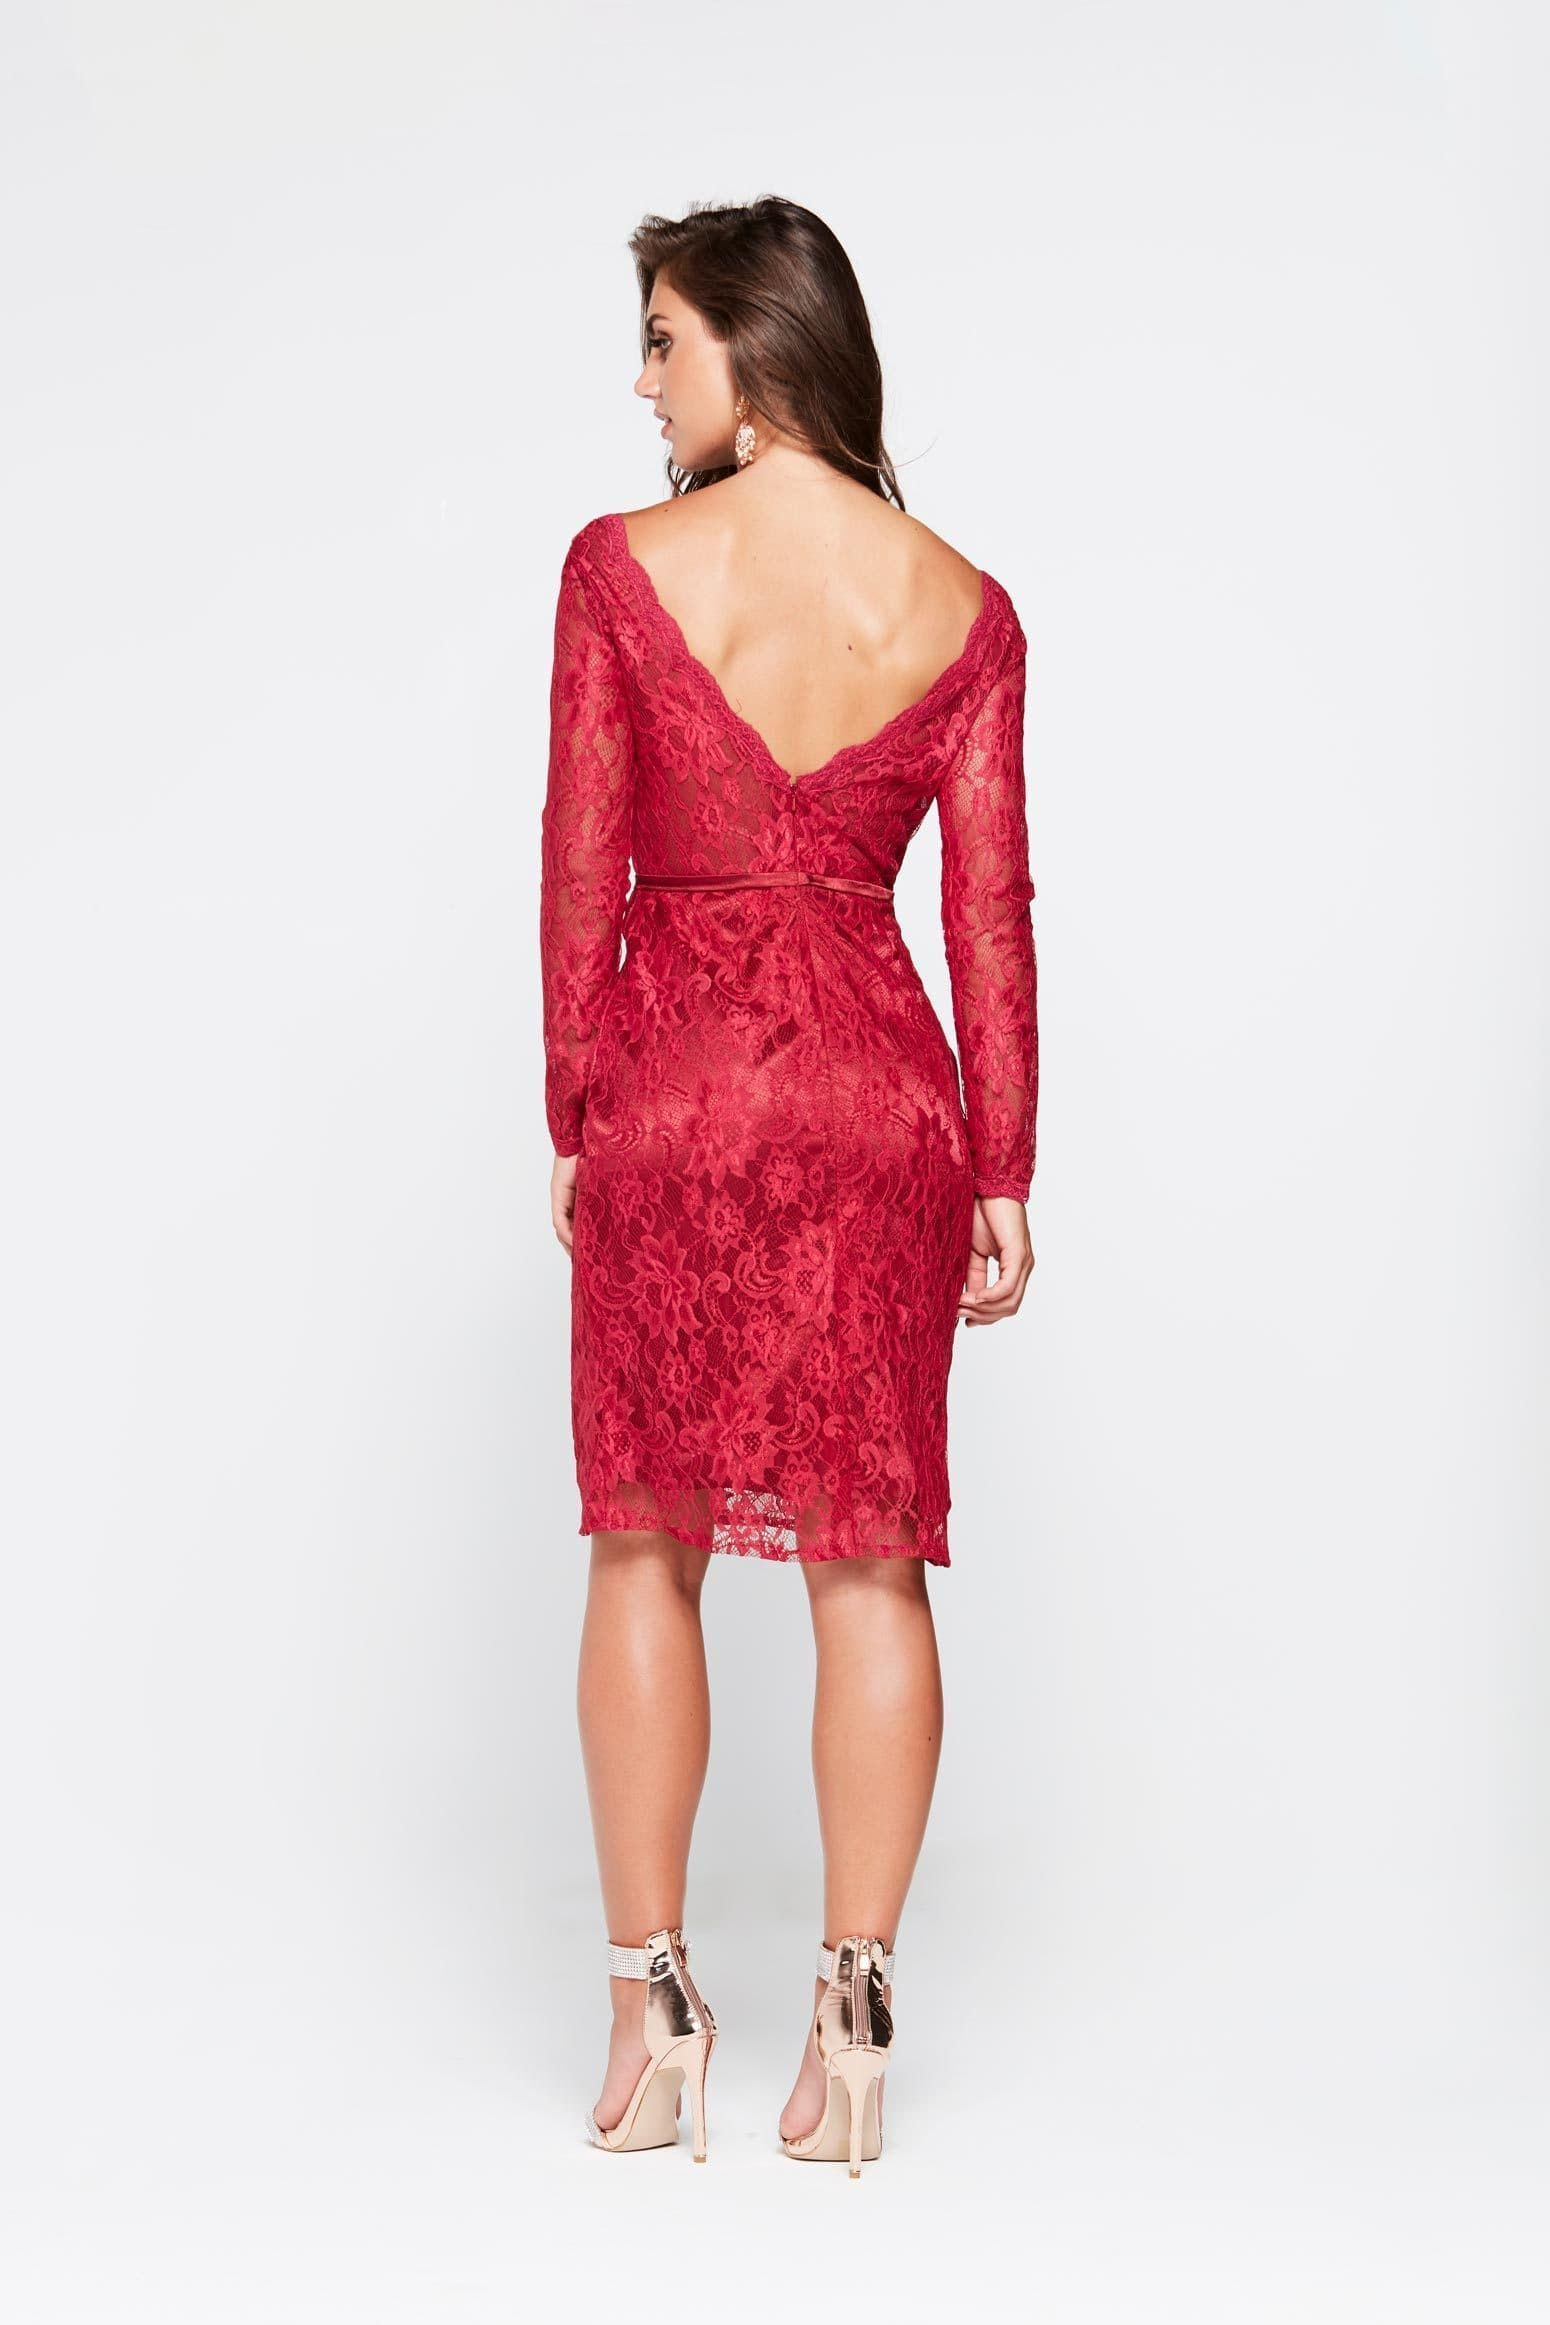 A&N Grace Mini Cocktail Dress - Deep Red Lace Long Sleeve A Line ...